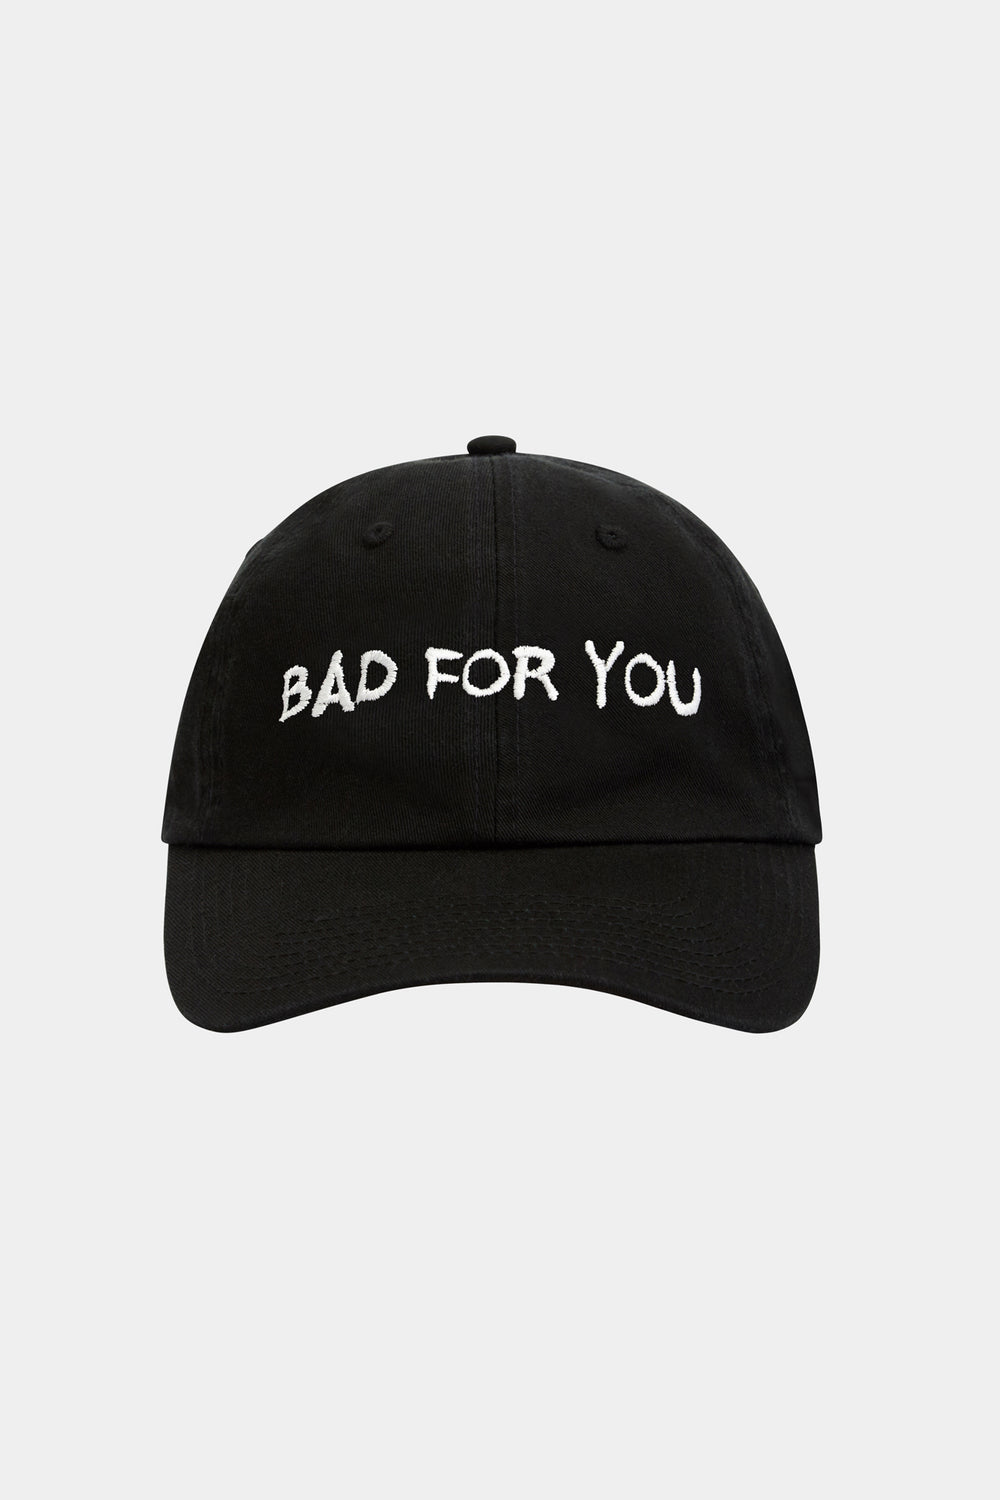 BAD FOR YOU CAP